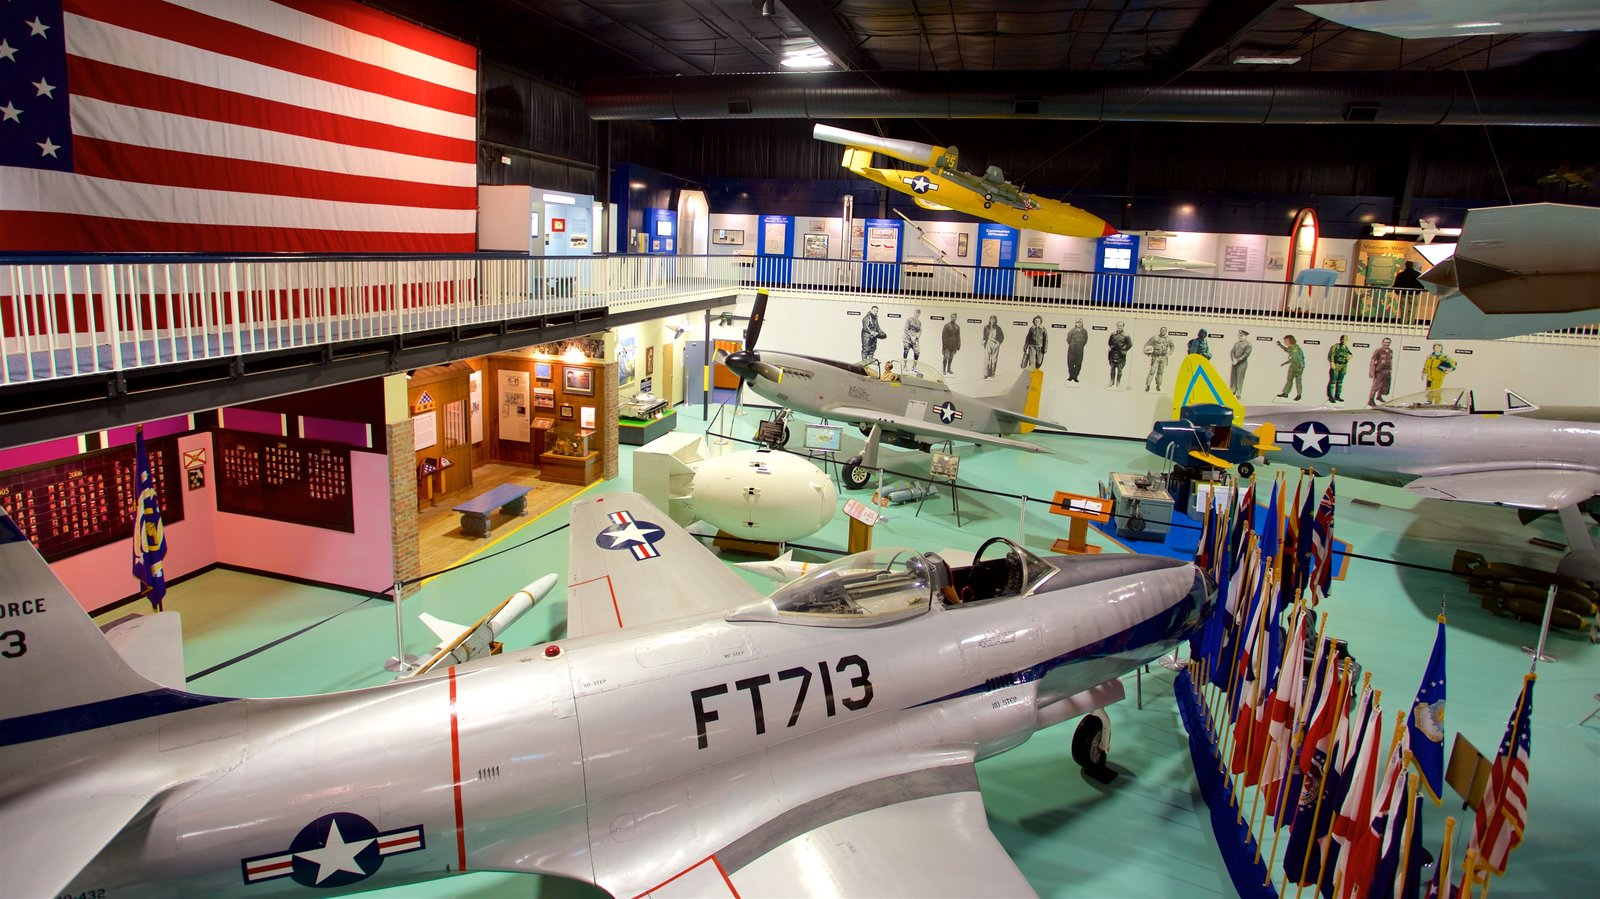 Air Force Armament Museum which includes interior views, heritage elements and military items